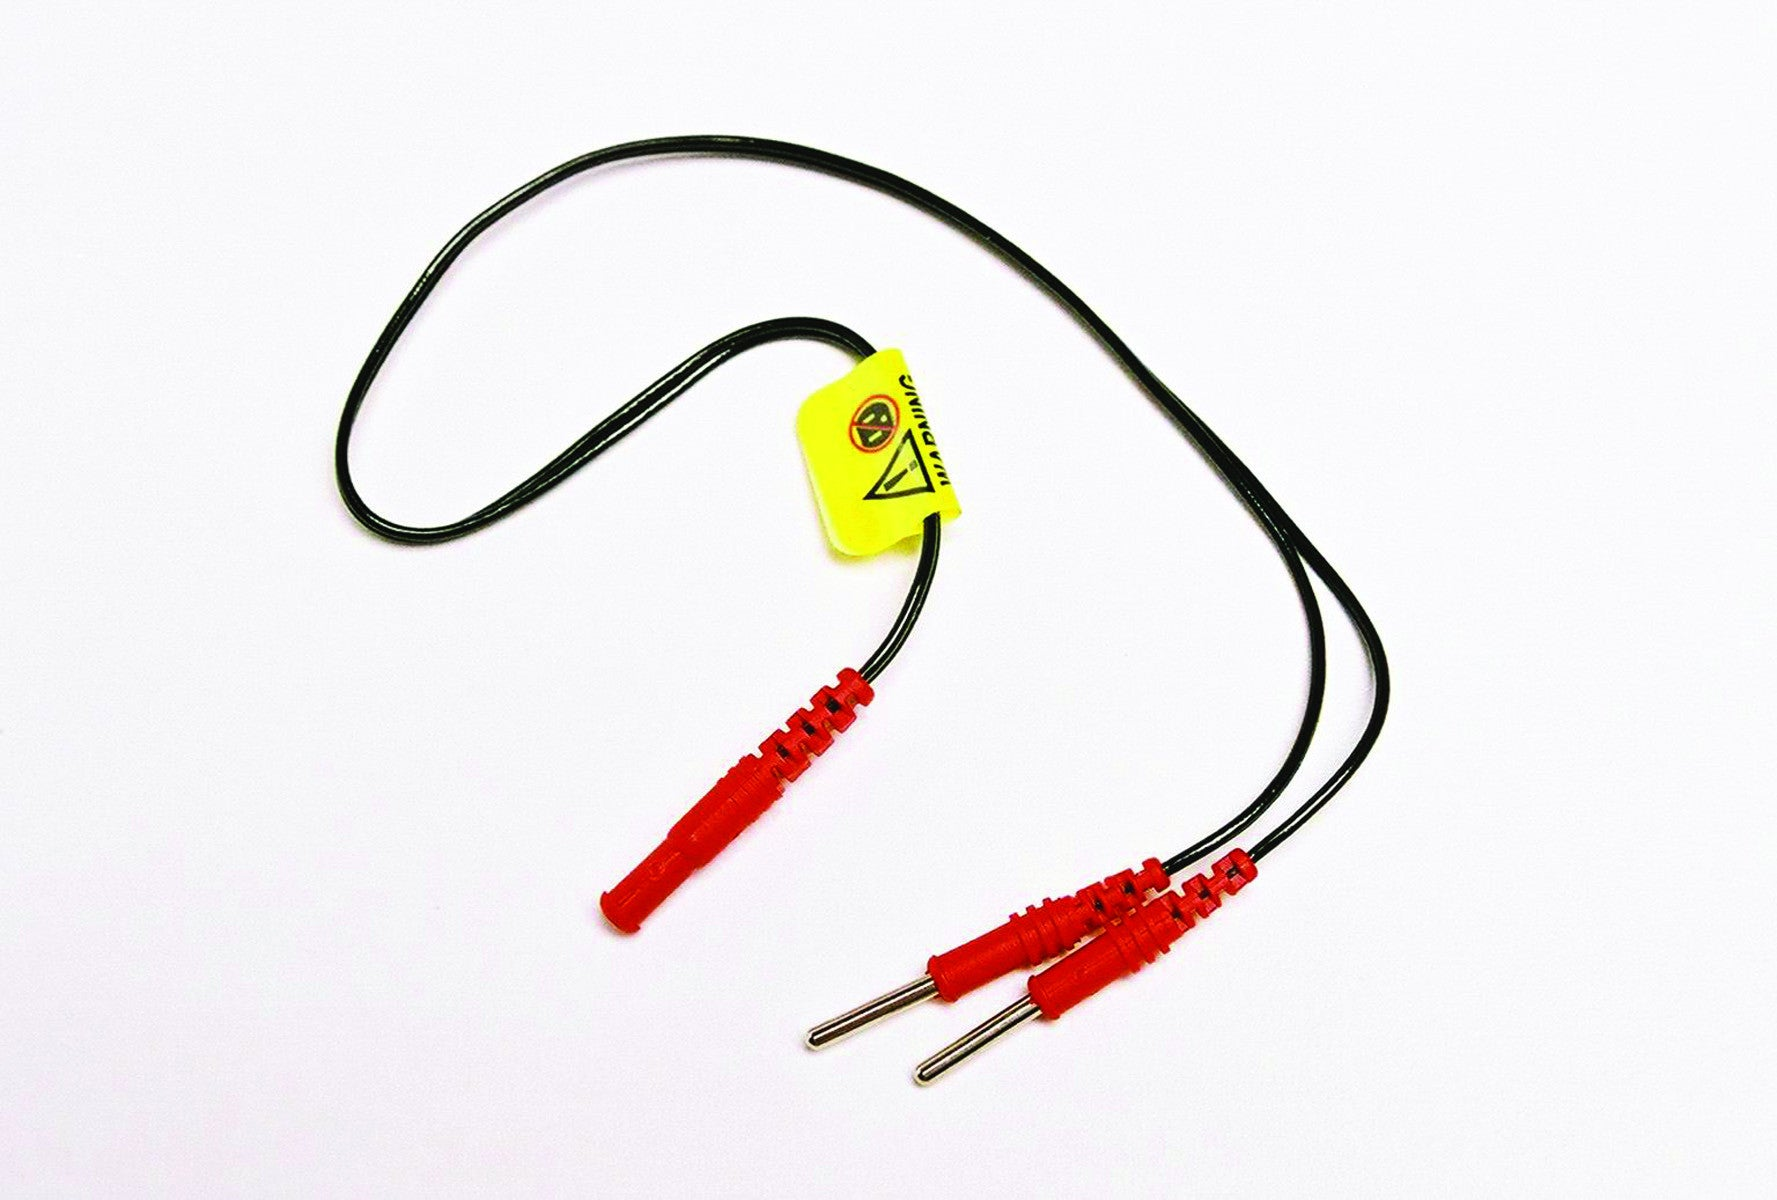 Electrotherapy Splitter Cable